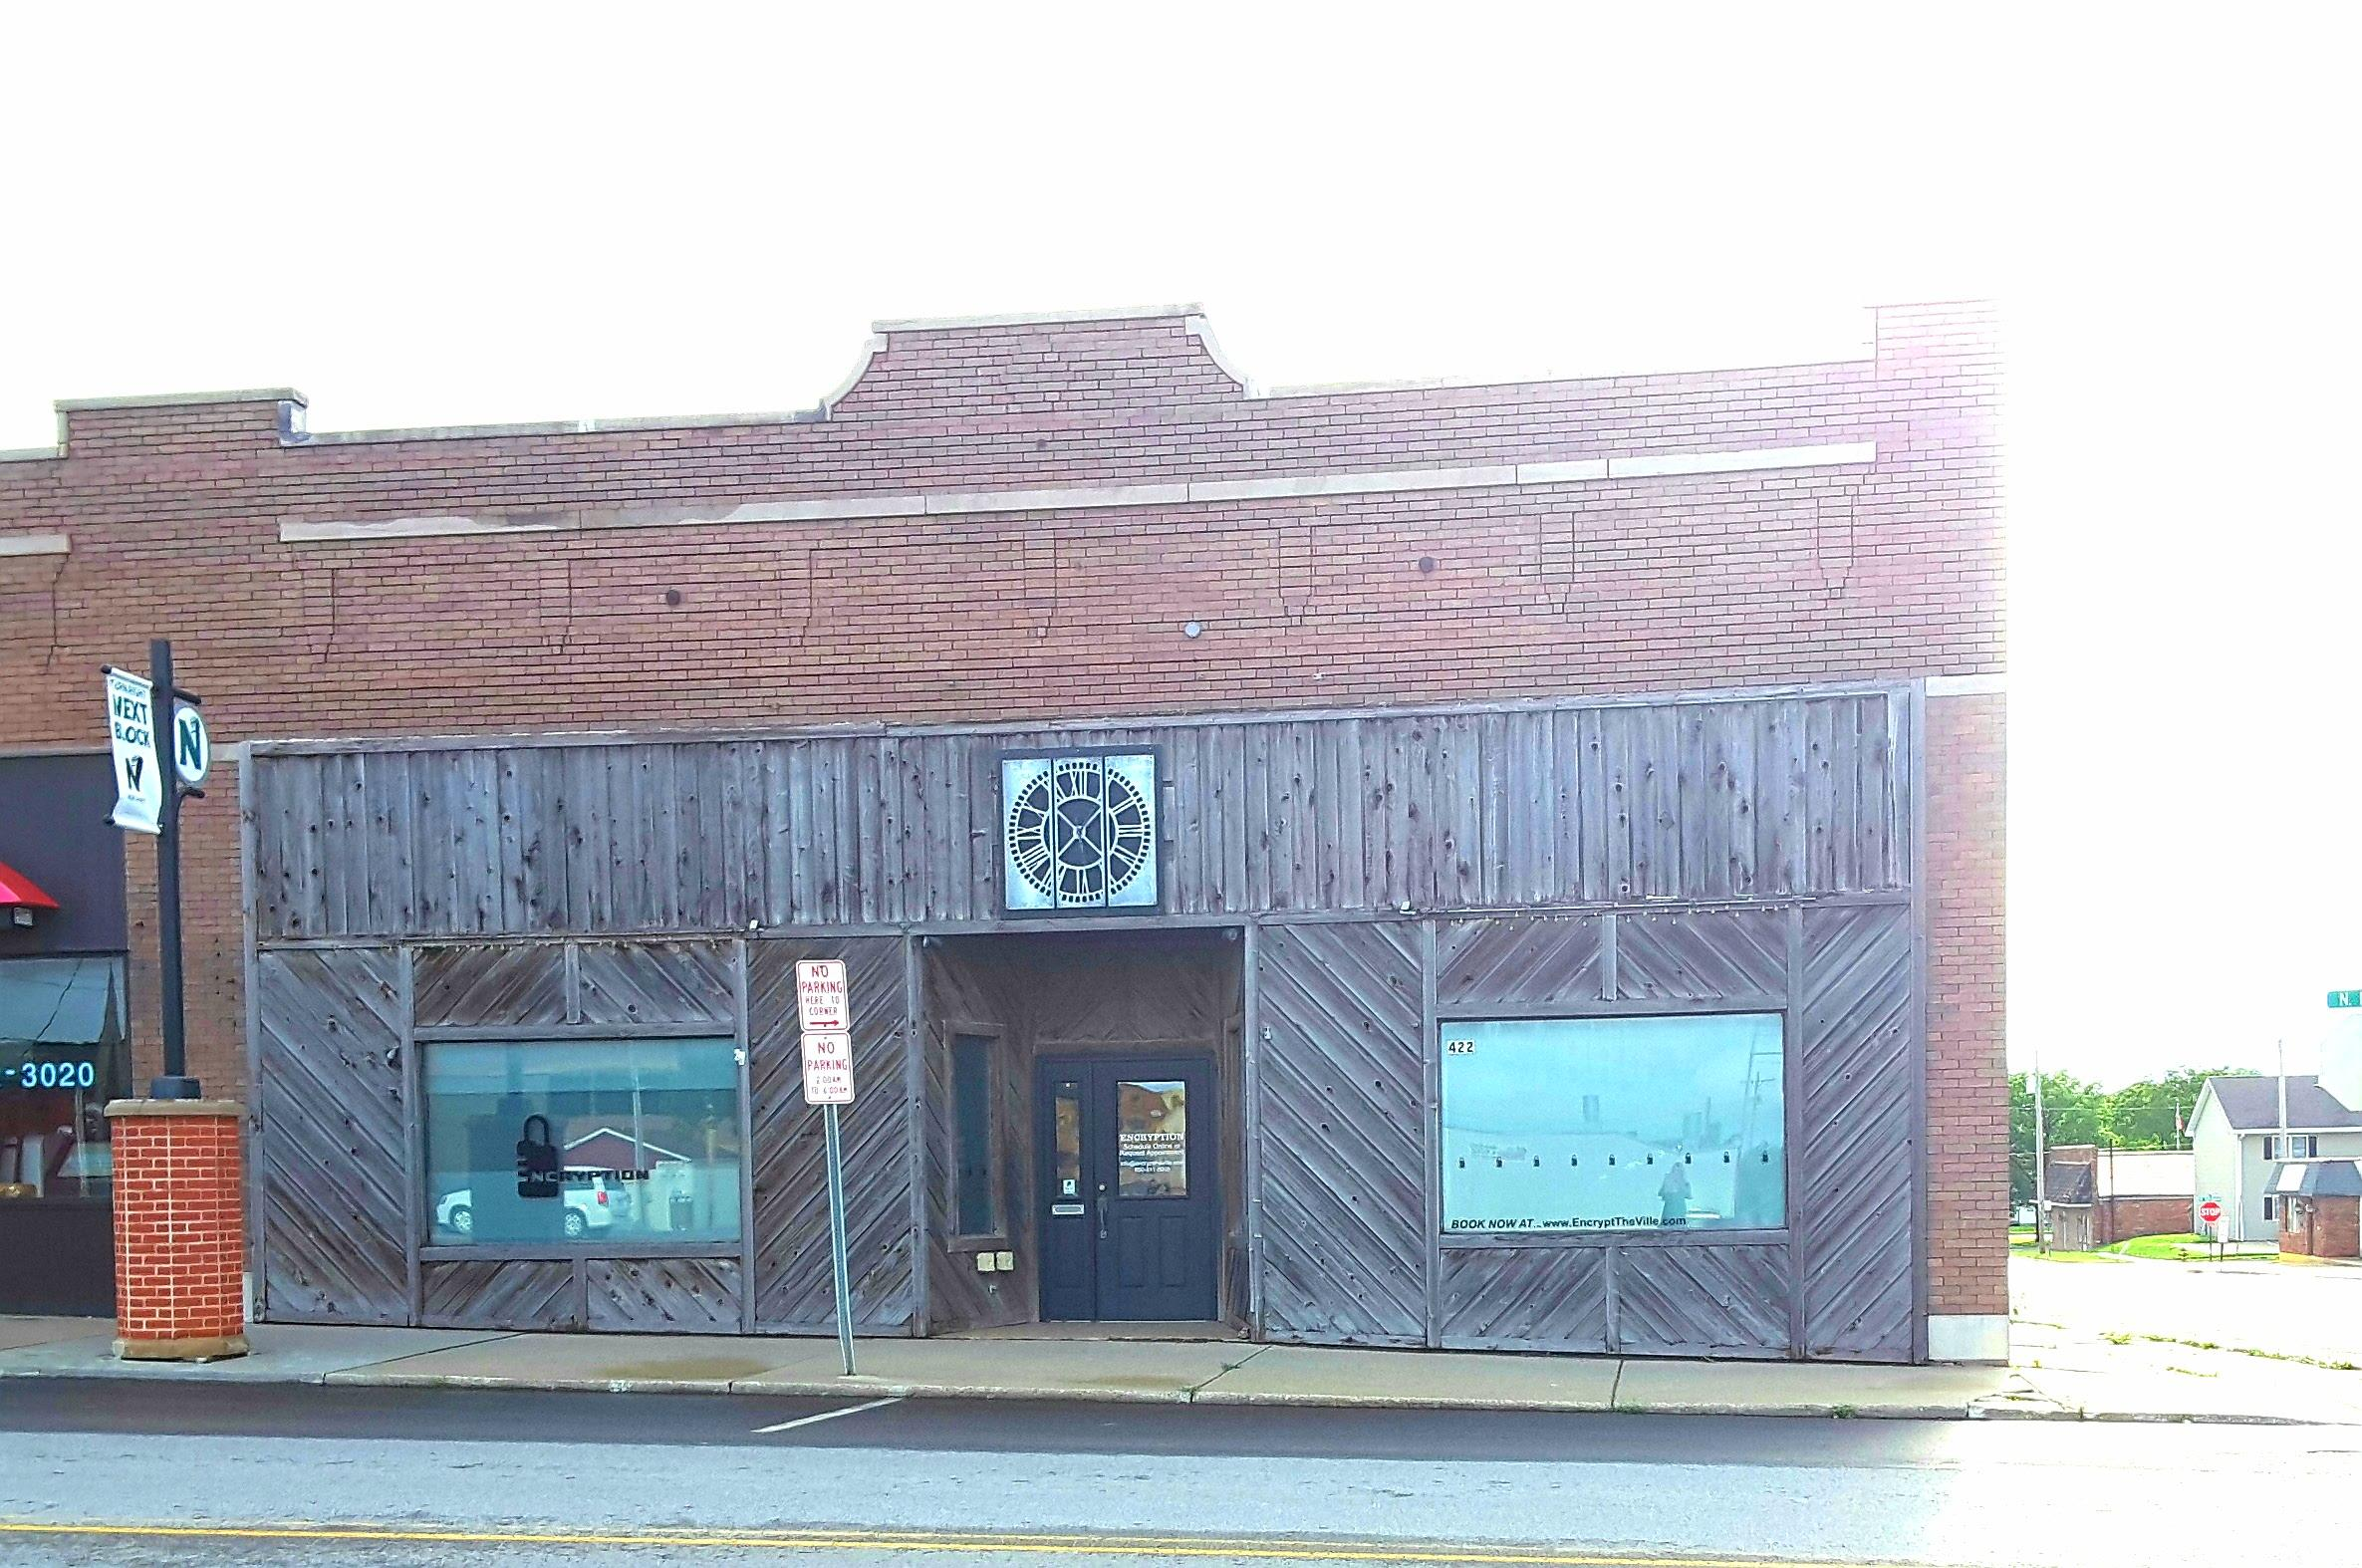 422 MAIN ST, Maryville, Missouri 64468, ,Commercial Improved,MAIN,4539